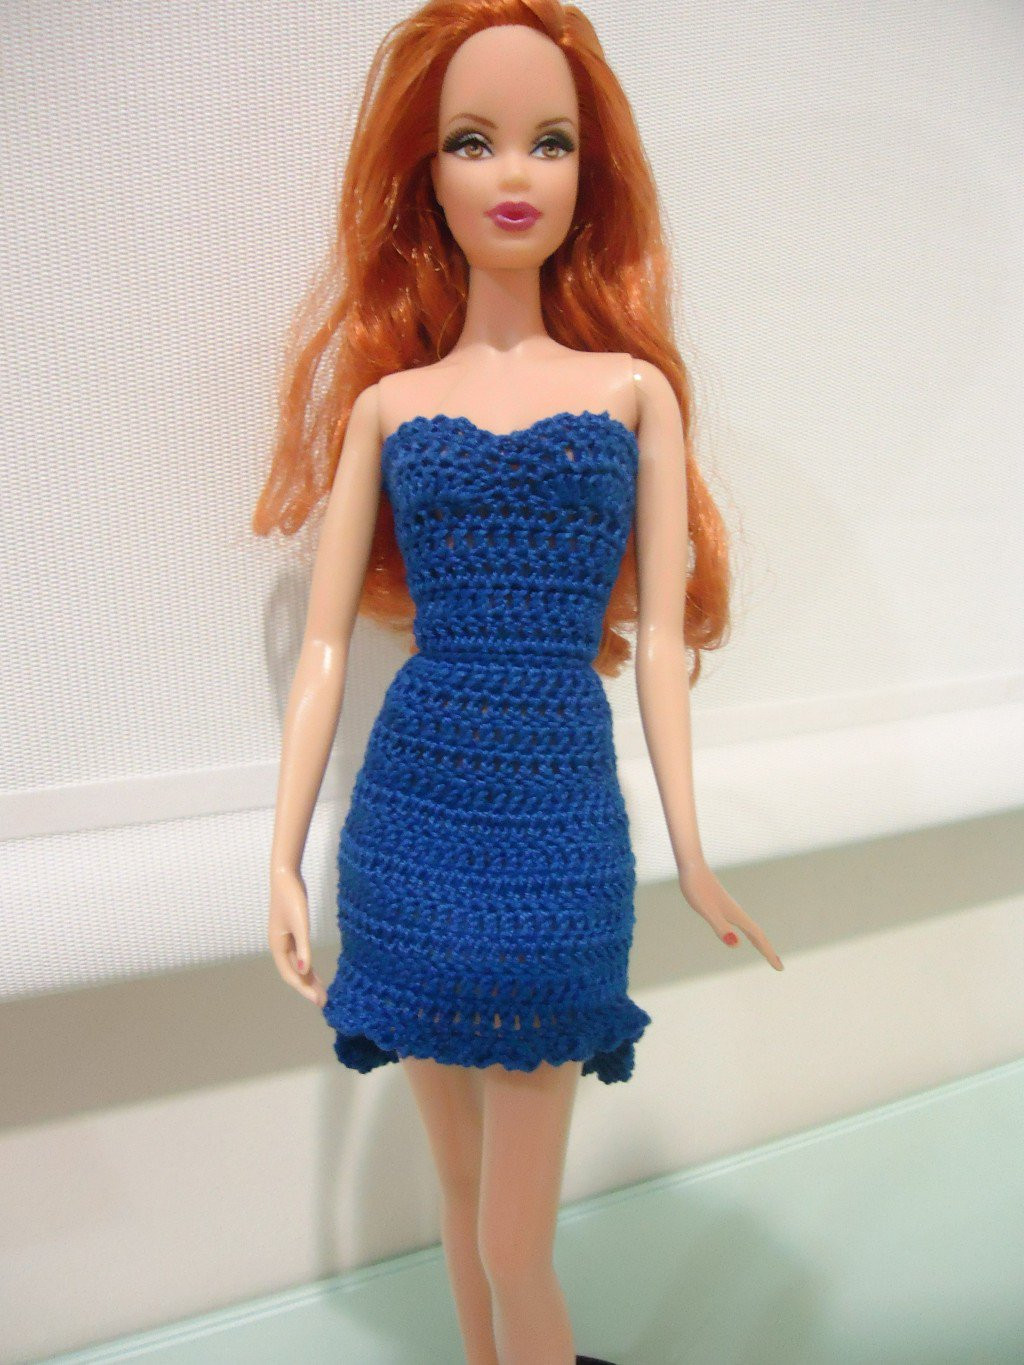 Crochet Barbie Dress Inspirational Barbie High Low Cocktail Dress Crochet Pattern Of Amazing 46 Pictures Crochet Barbie Dress